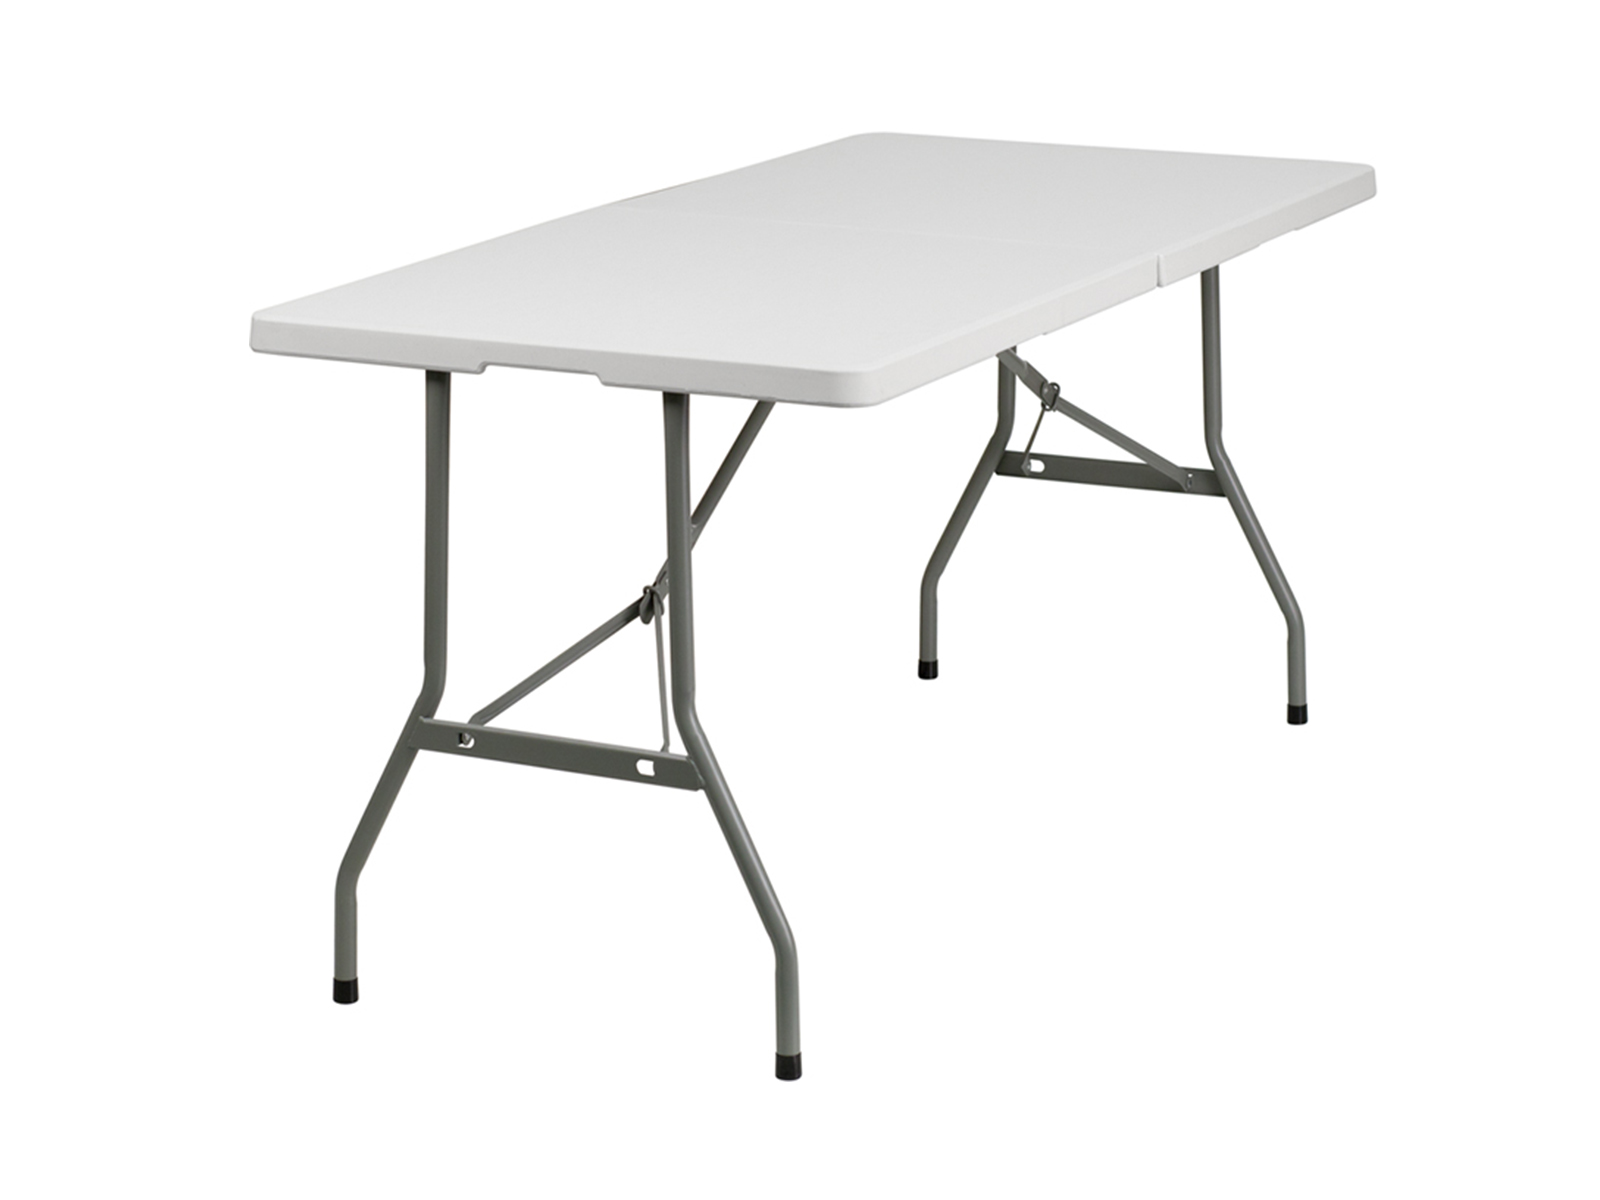 5' Bi-Fold Granite White Plastic Folding Table